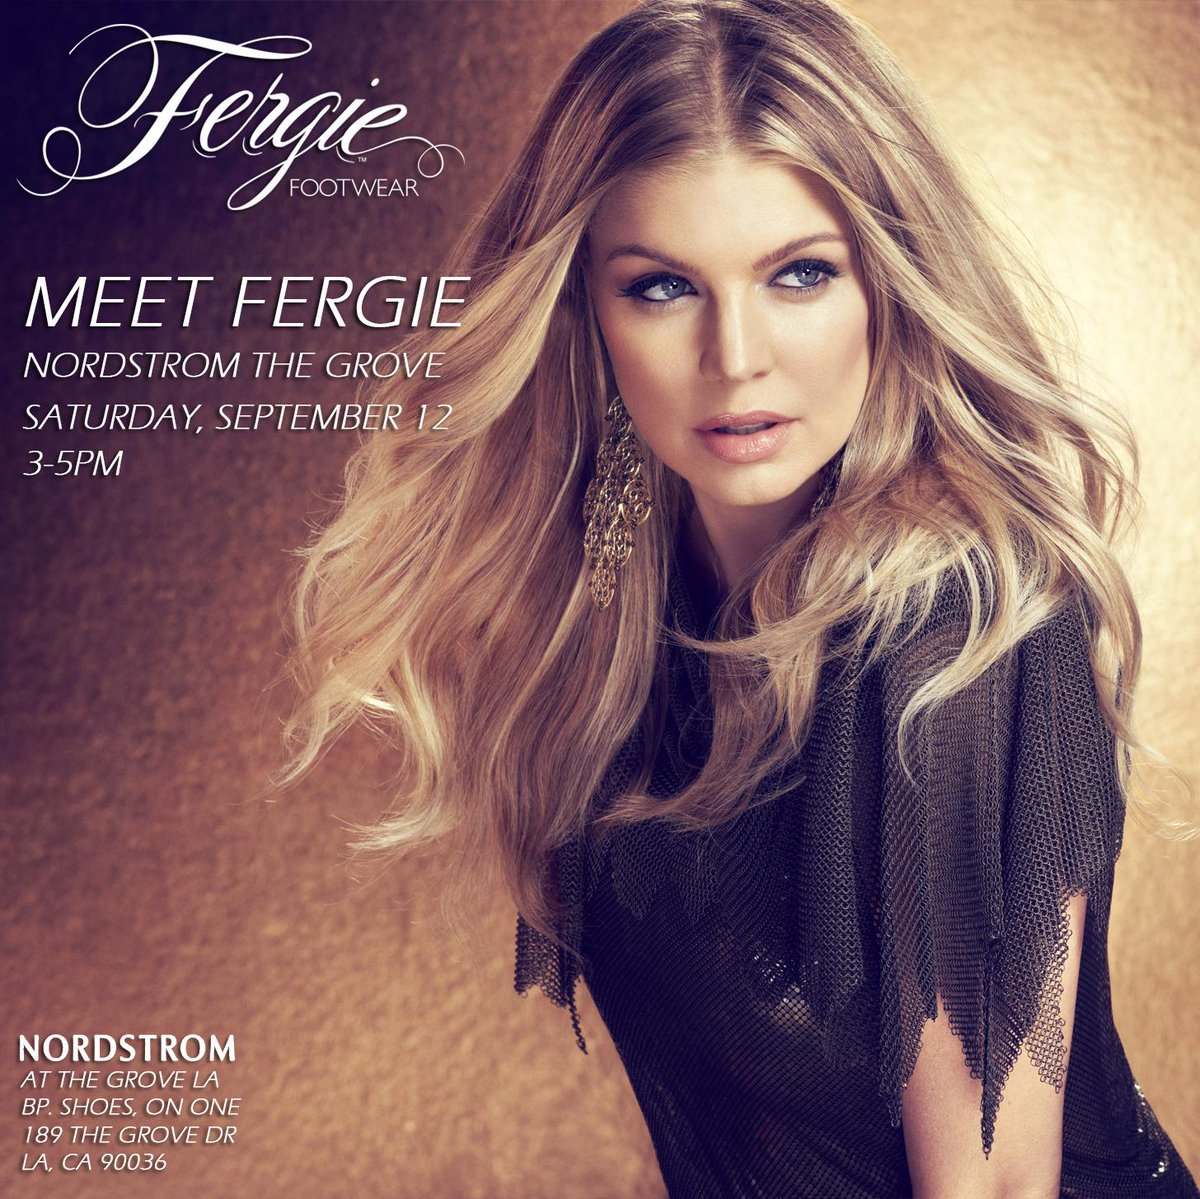 RT @FergieFootwear: ????9/12 Meet @Fergie 3-5pm at @Nordstrom @TheGroveLA! W/ yr purchase u'll get 2 meet #Fergie & receive a signed photo. ht…